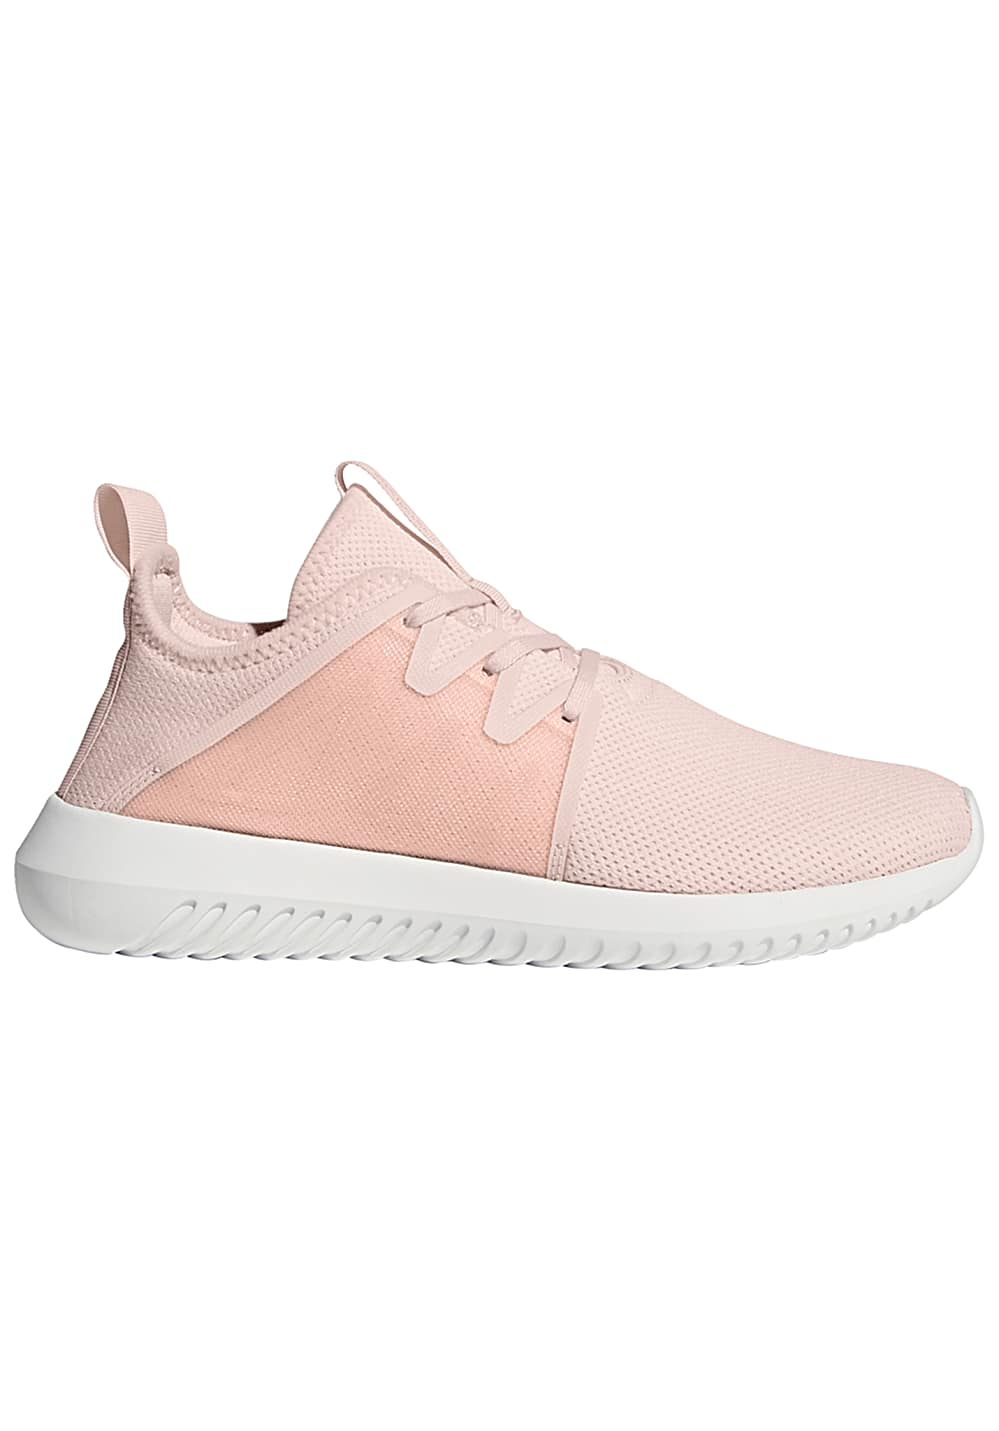 adidas tubular womens grey and pink